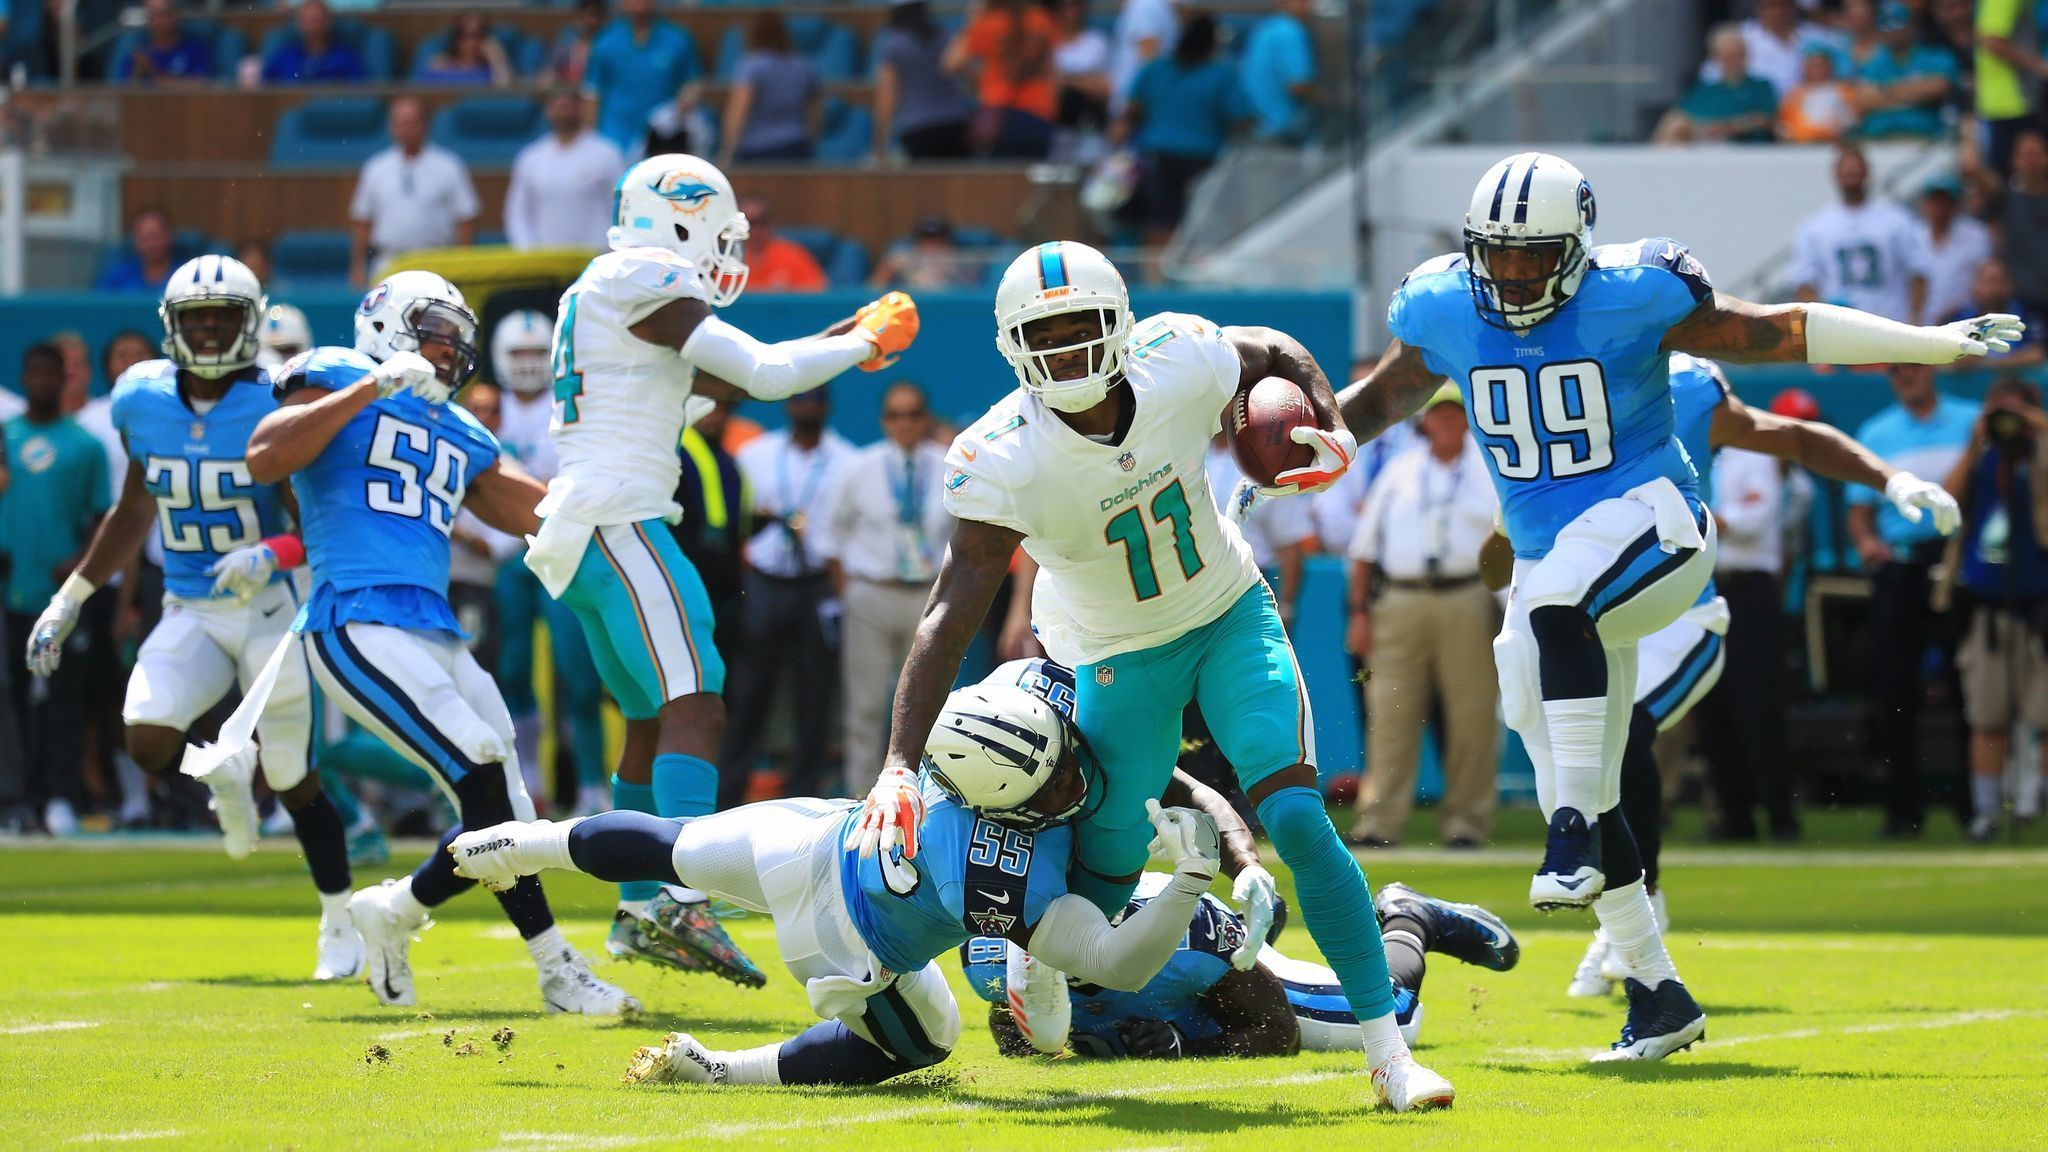 Fl-sp-dolphins-inactives-20171015